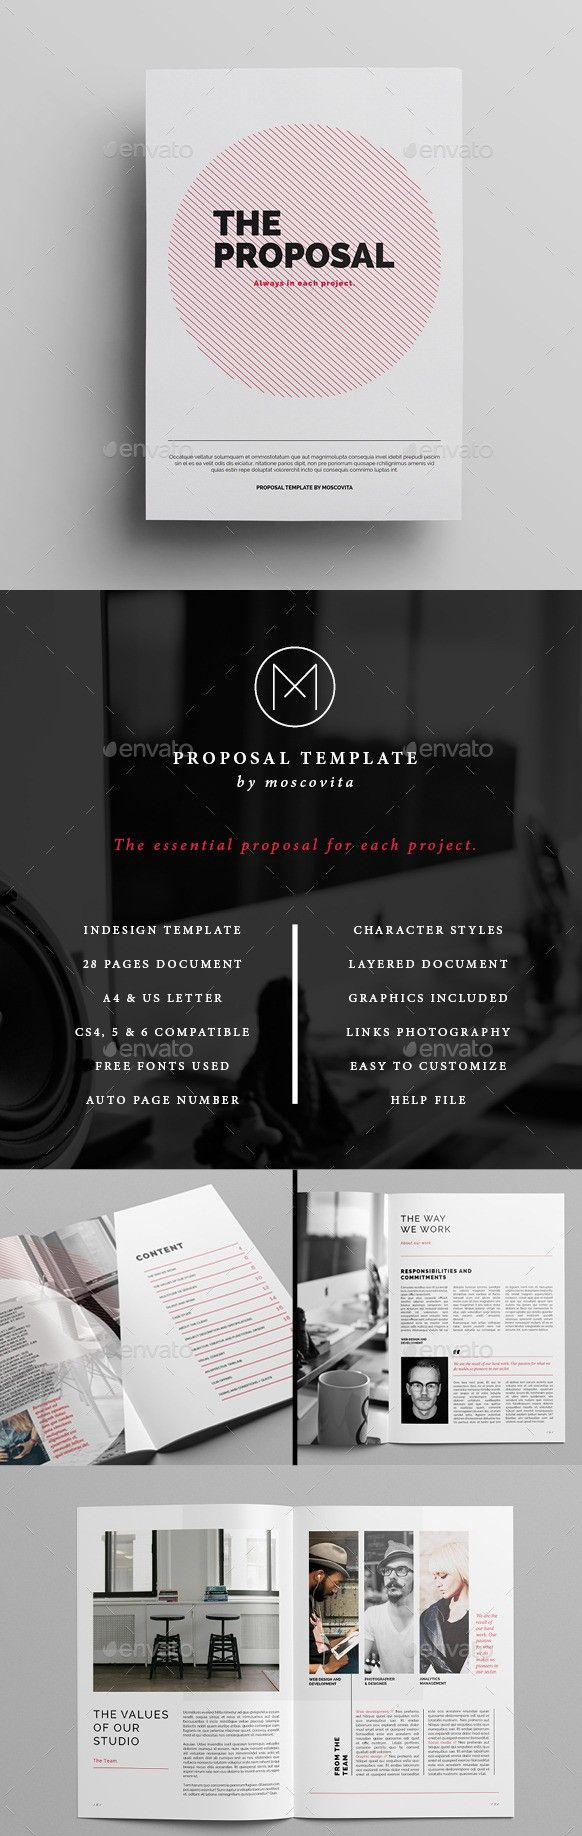 55+ Best Business Proposal Templates In InDesign PSD U0026 MS Word  Best Proposal Templates